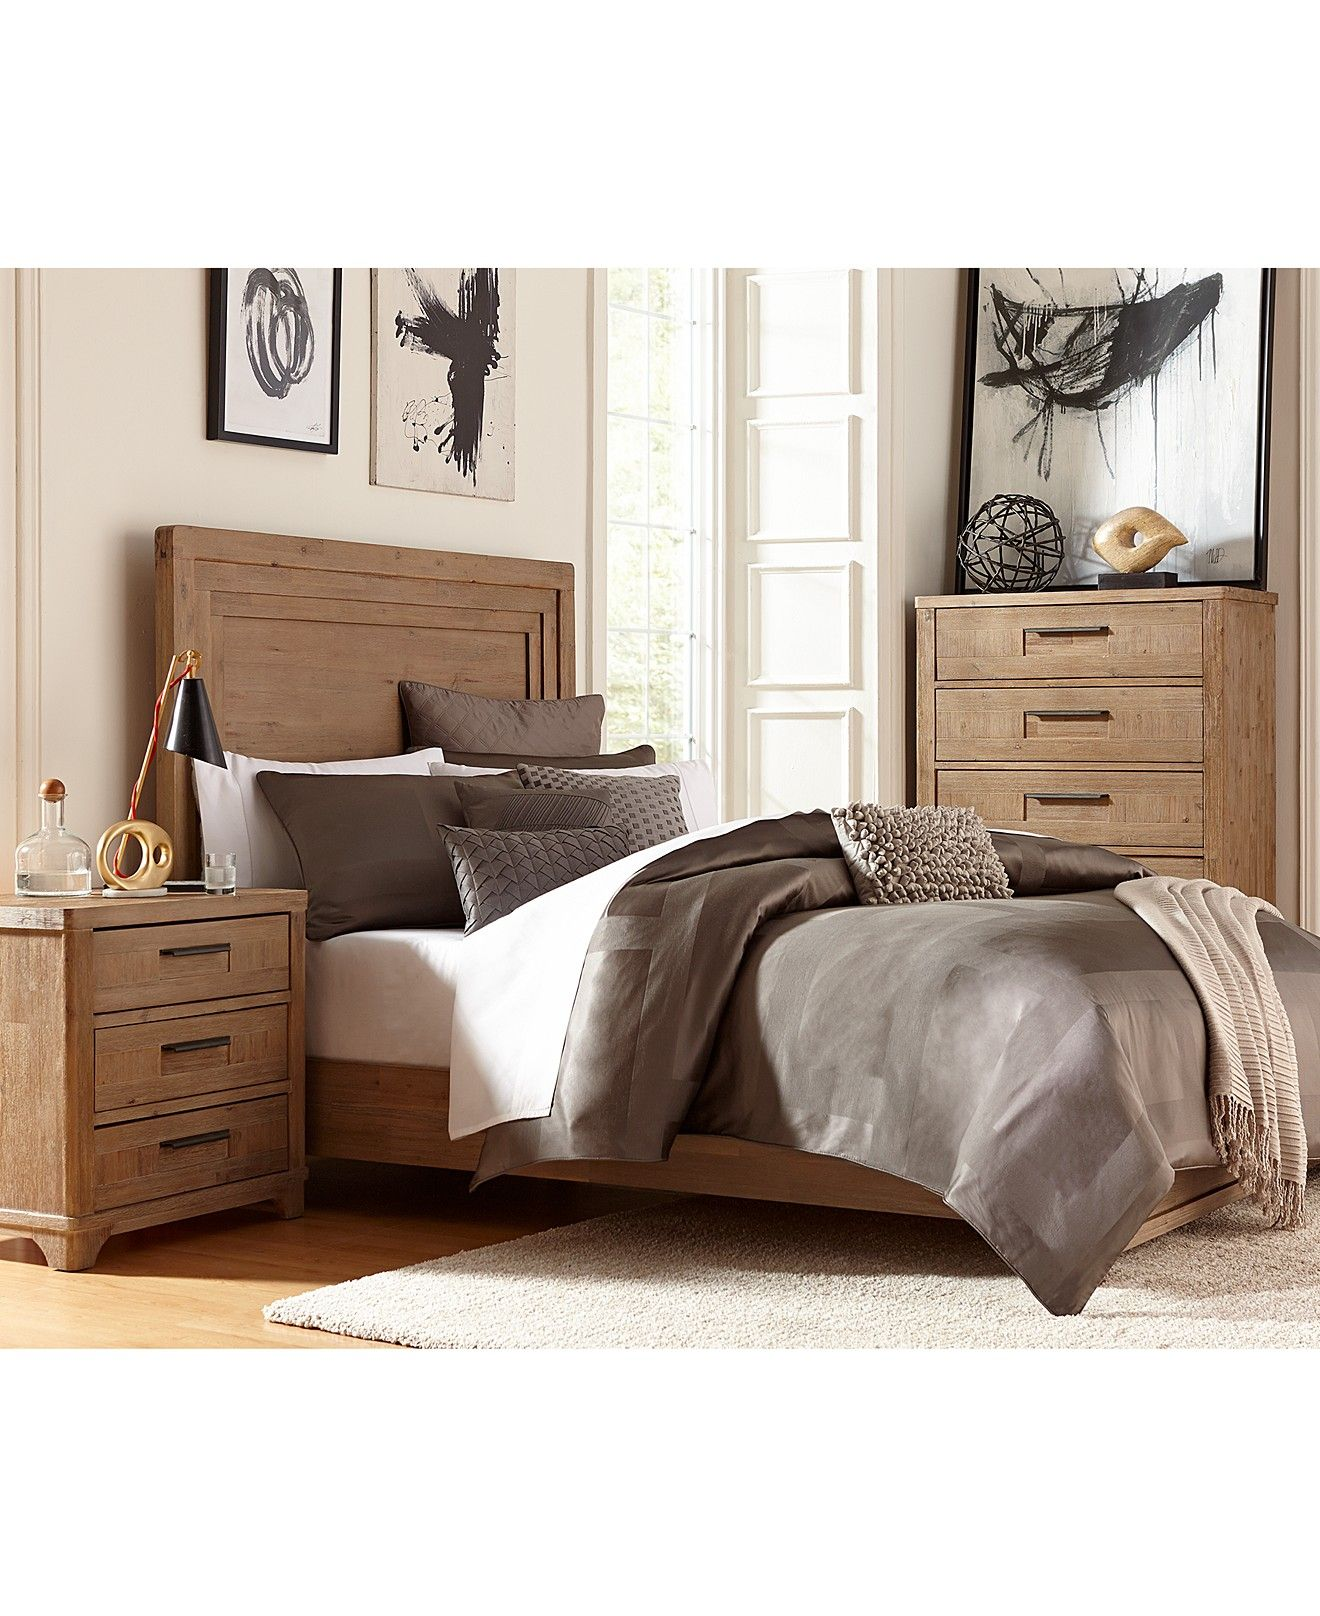 Summerside 3 Piece Queen Bedroom Furniture Set with Chest Shop